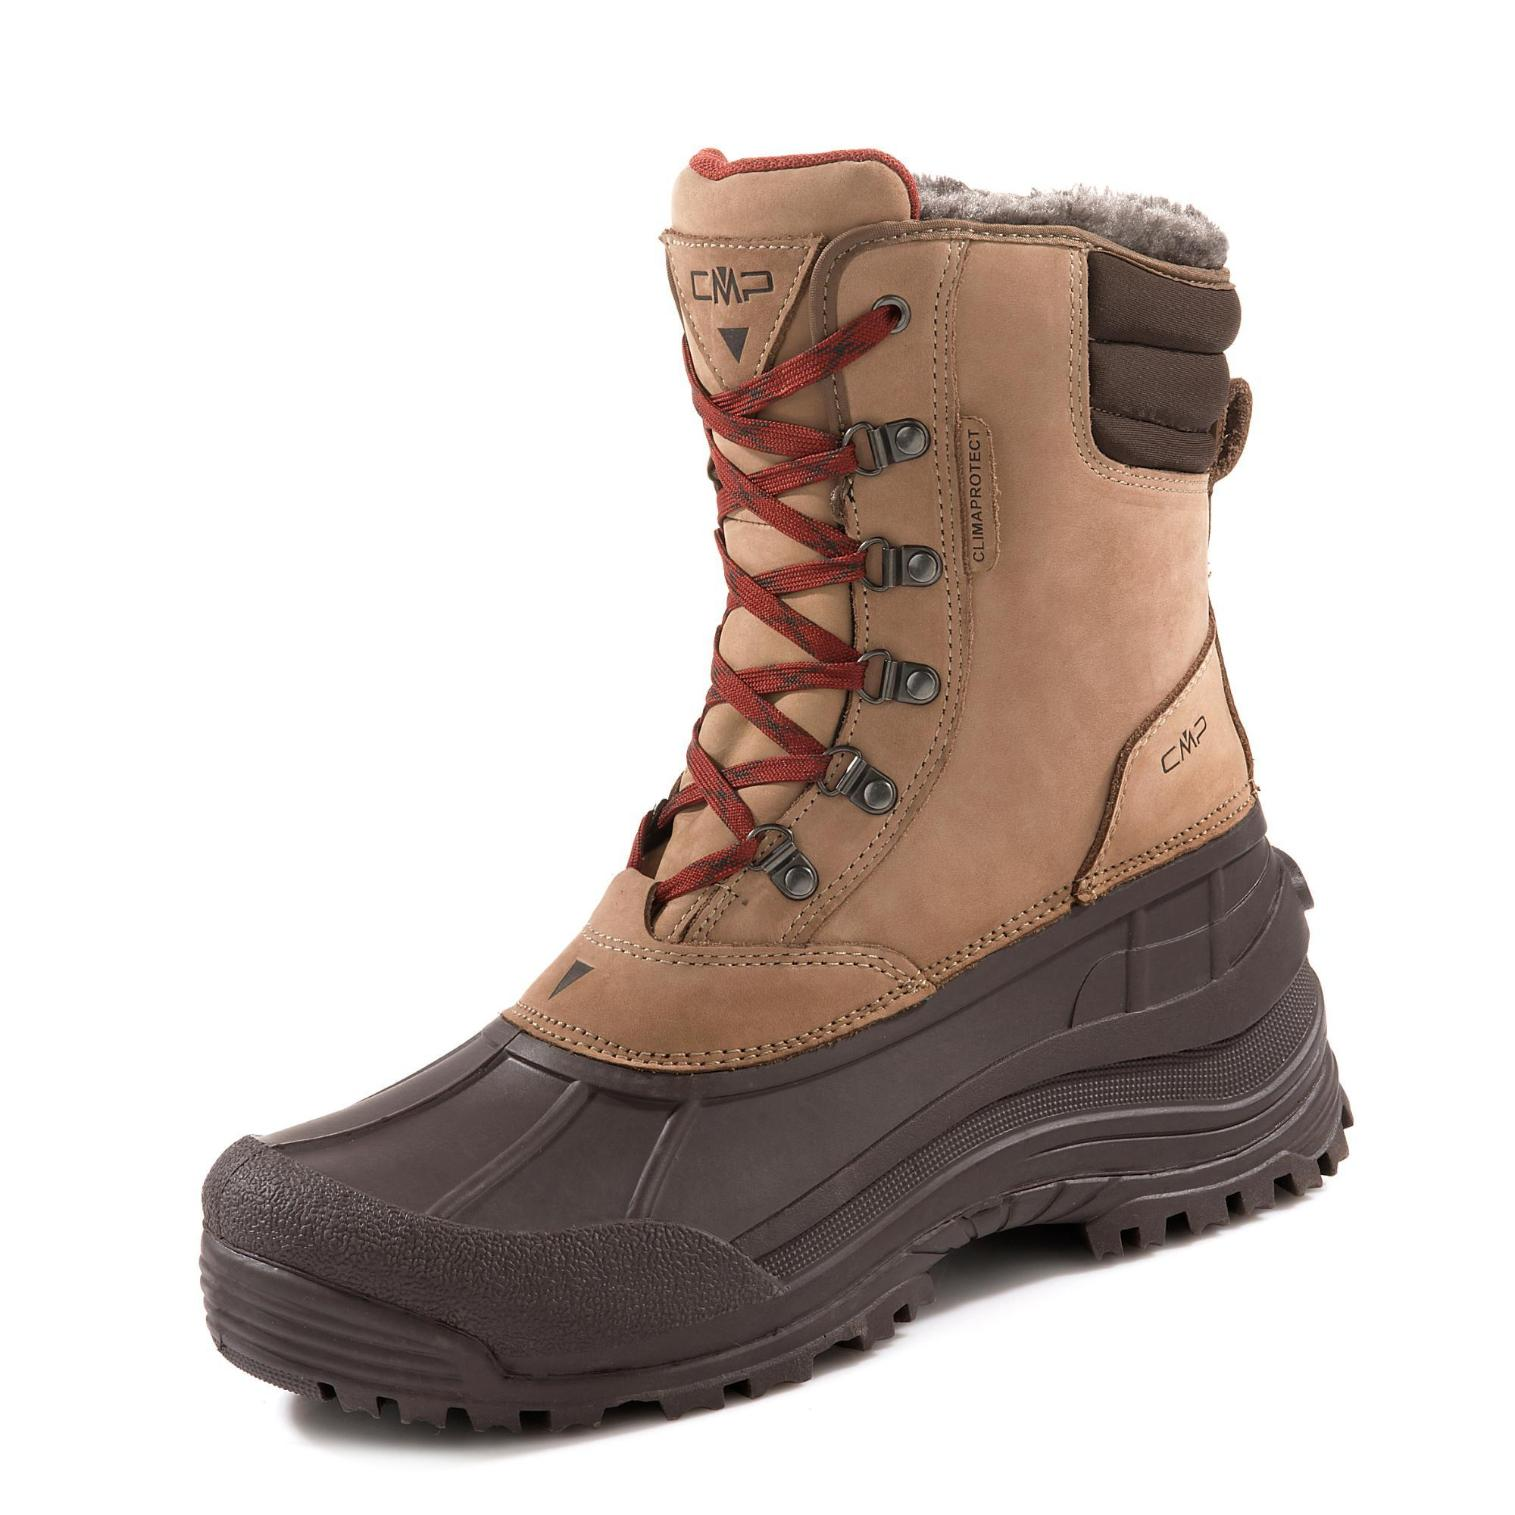 CMP Clima Protect Winterboots in Farbe beige